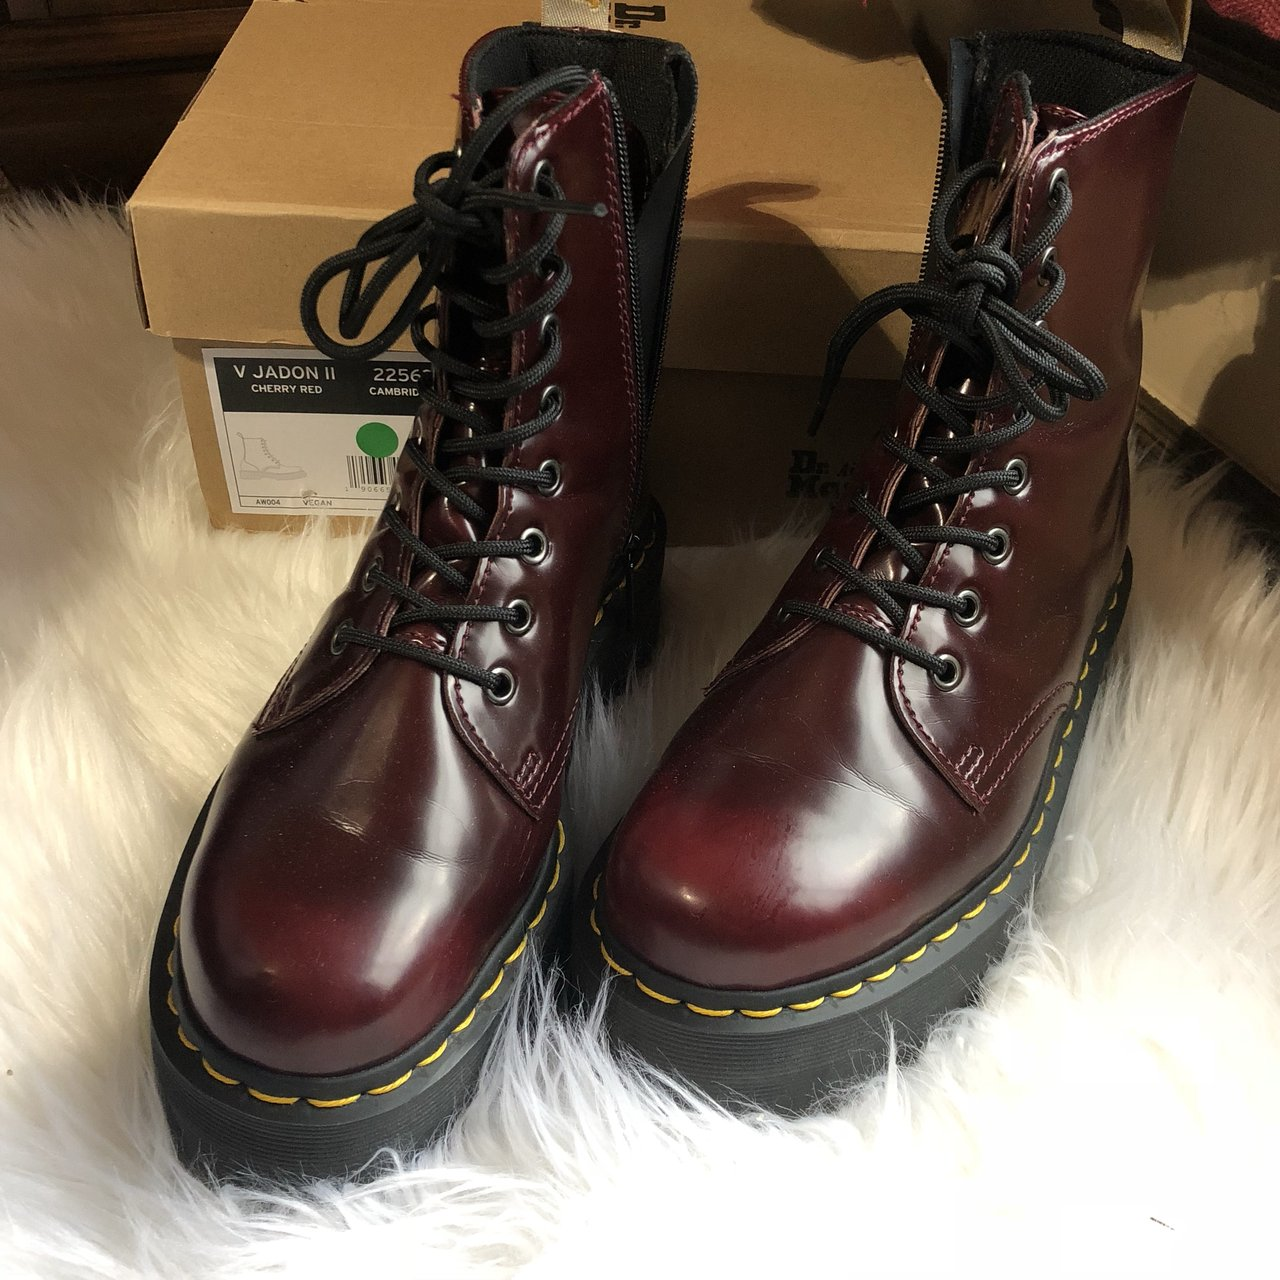 863b649c46a @iruyil. 8 months ago. Oklahoma City, United States. Dr Martens V Jadon II  Cherry Red Boots